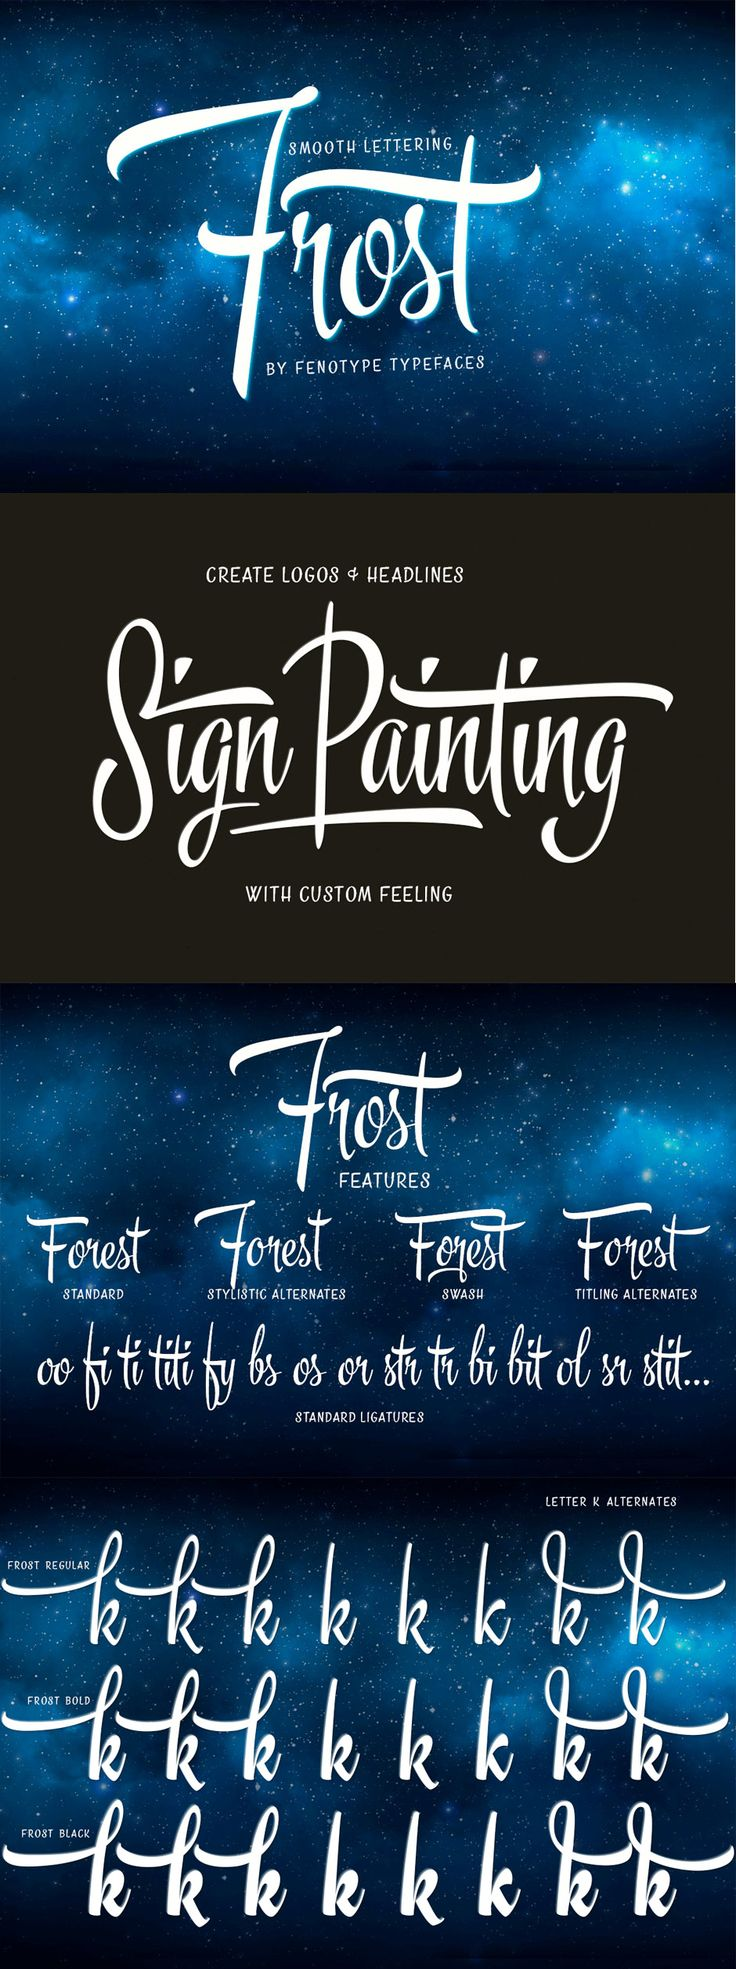 Frost Font by Fenotype | 22 Professional & Artistic Fonts Apr 2015